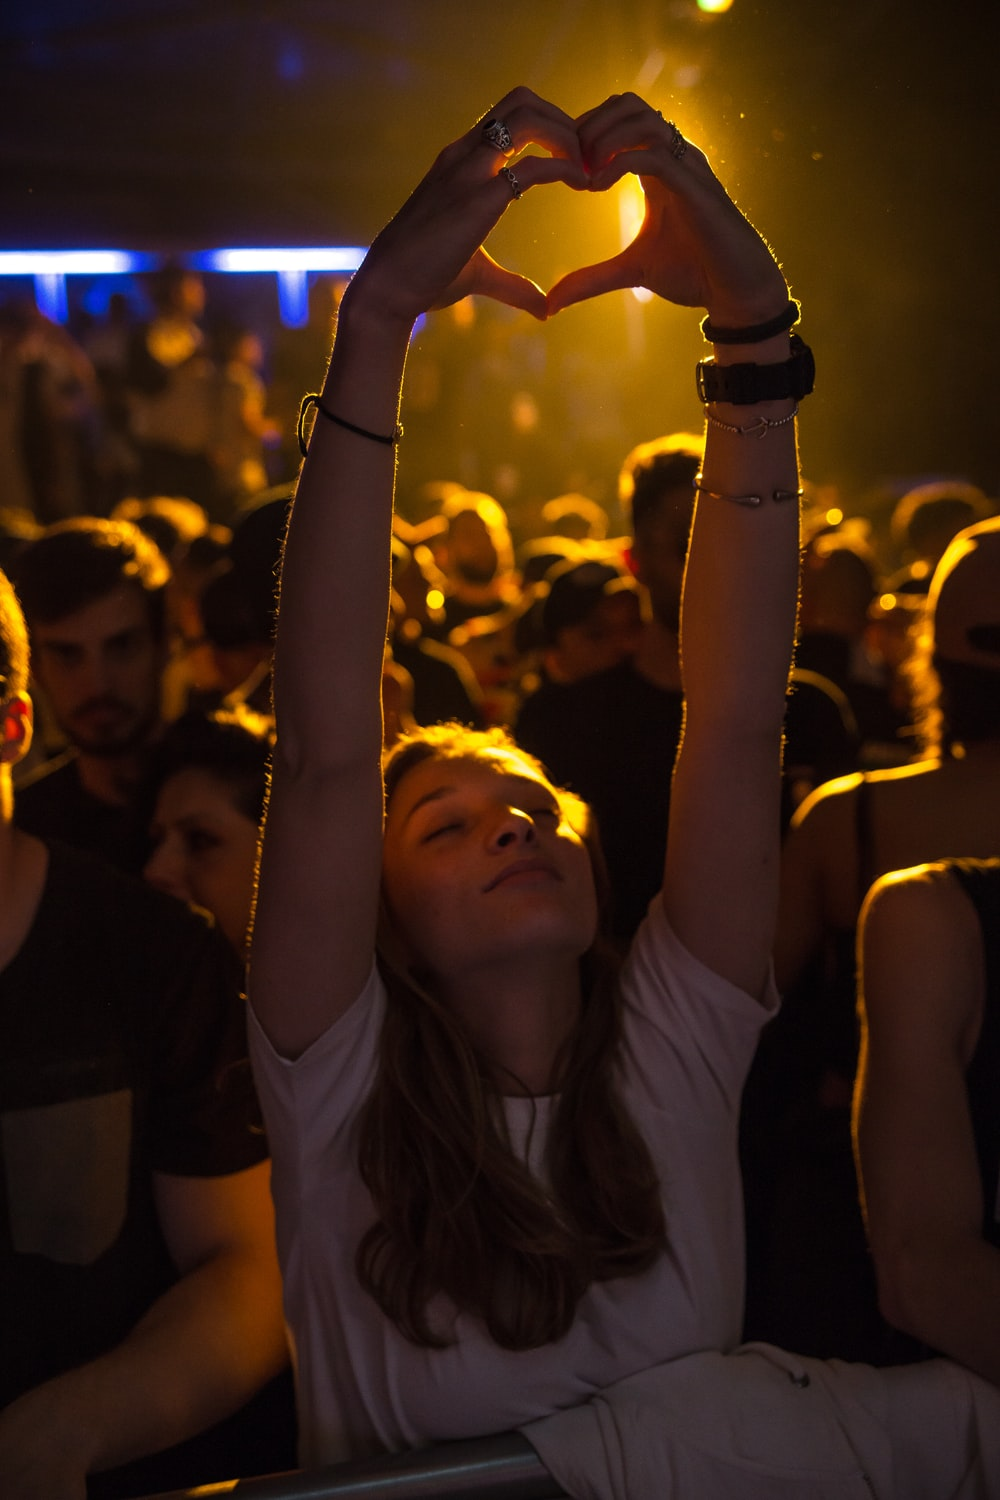 woman at crowd raising her hand while making heart sign